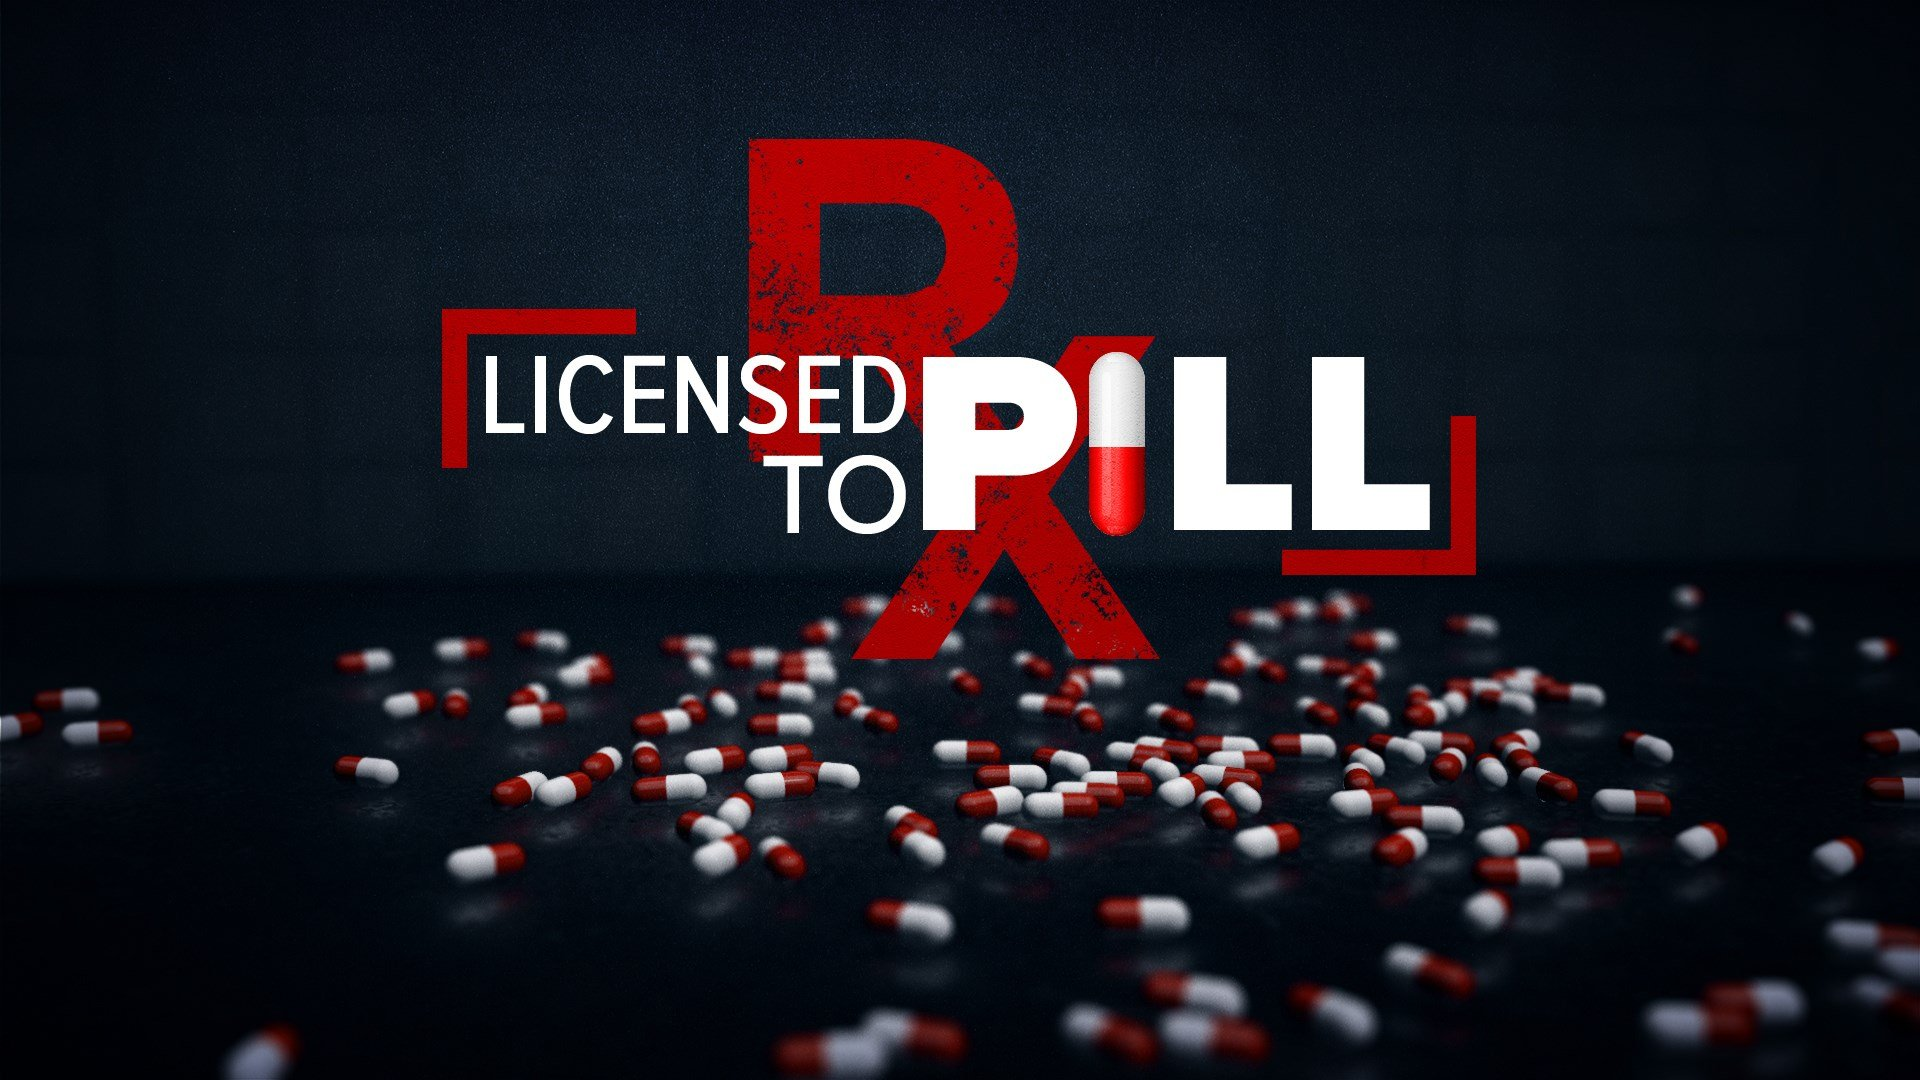 Raycom focused its investigation on the top 1,000 prescribers based on the number of prescriptions they had written. (Source: Raycom Media)